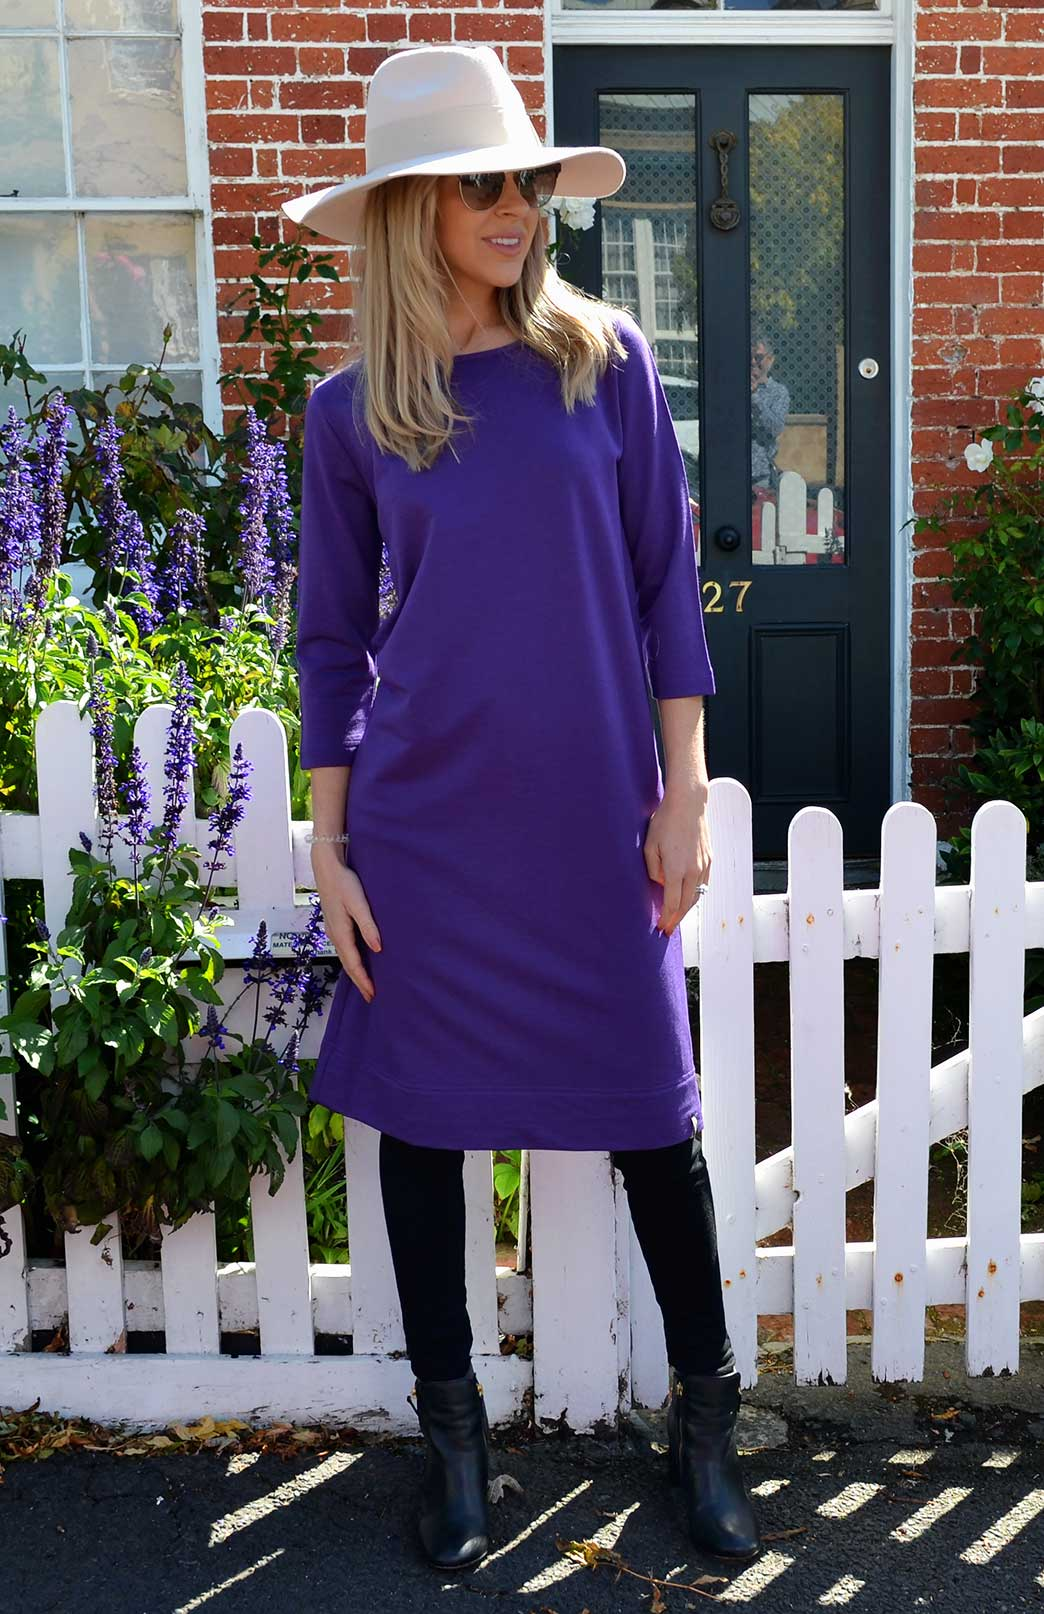 Audrey Shift Dress - Women's Violet Purple Merino Wool Classic Knee Length Dress - Smitten Merino Tasmania Australia